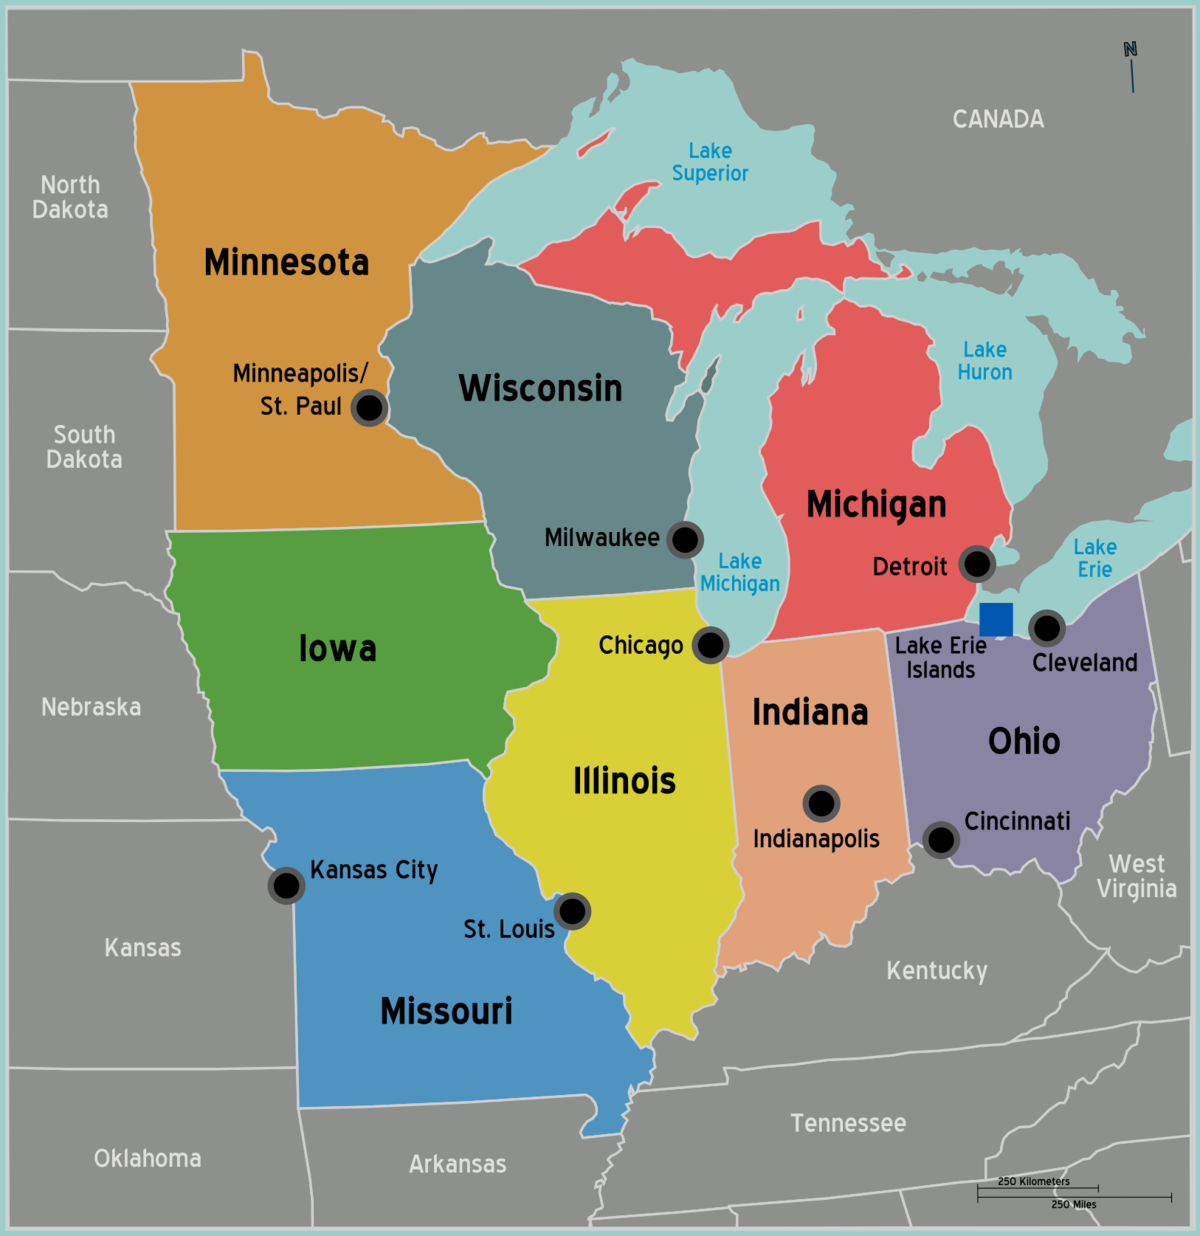 Midwest Travel Guide At Wikivoyage - Cleveland us map